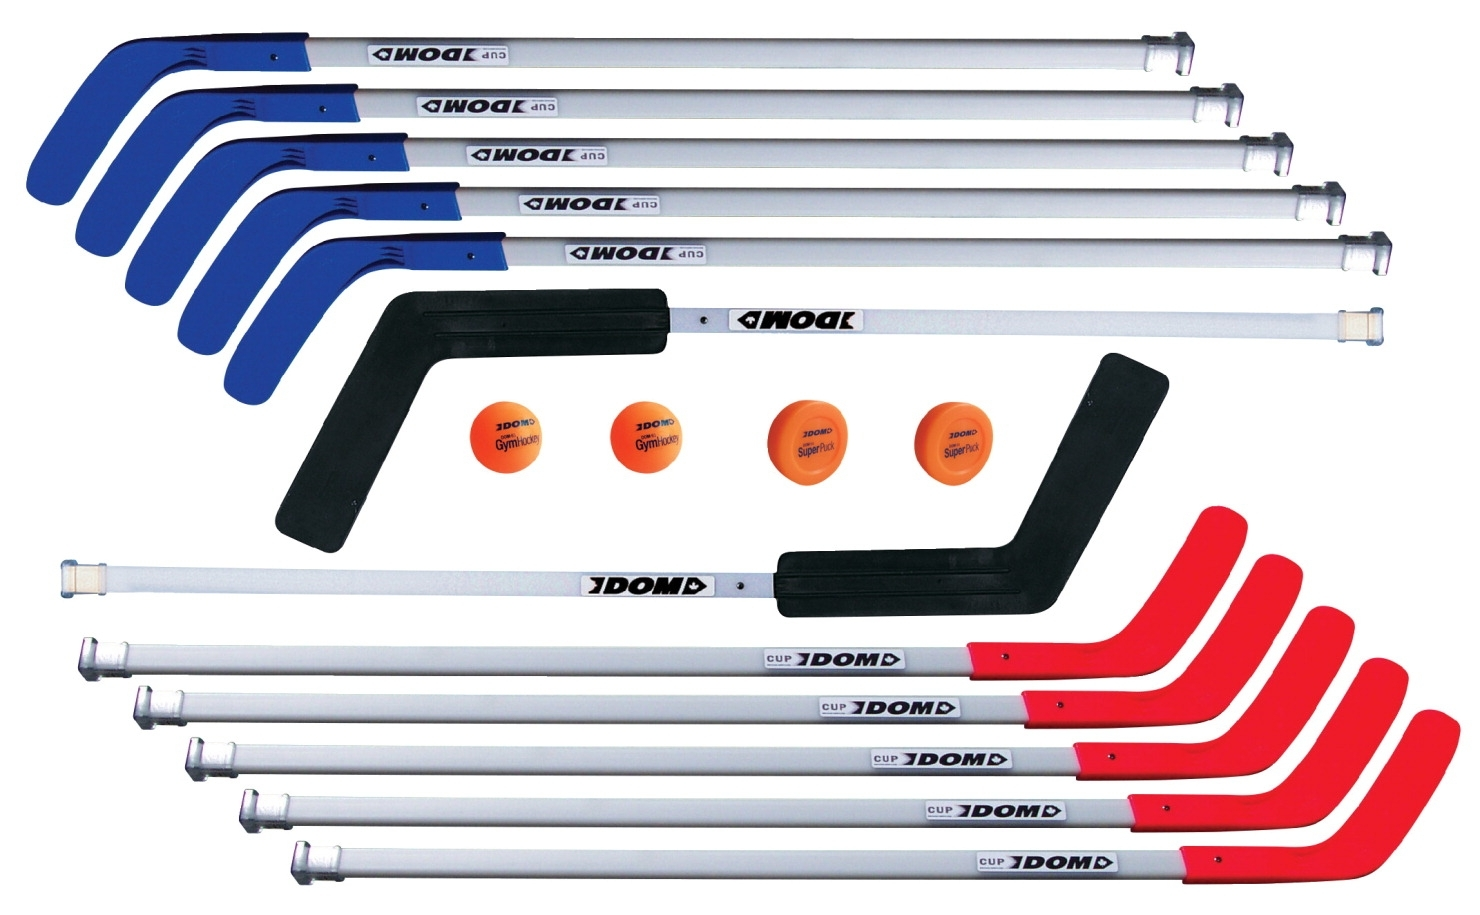 Sports & Fitness Physical Education & Sport Balls Field Hockey Balls - 007564 - Dom 47 In Hockey Cup C6 Set; Includes 8 Sticks; 2 Goalie Sticks; 2 Superpucks And 2 Balls; Grades 10 And Up 007564